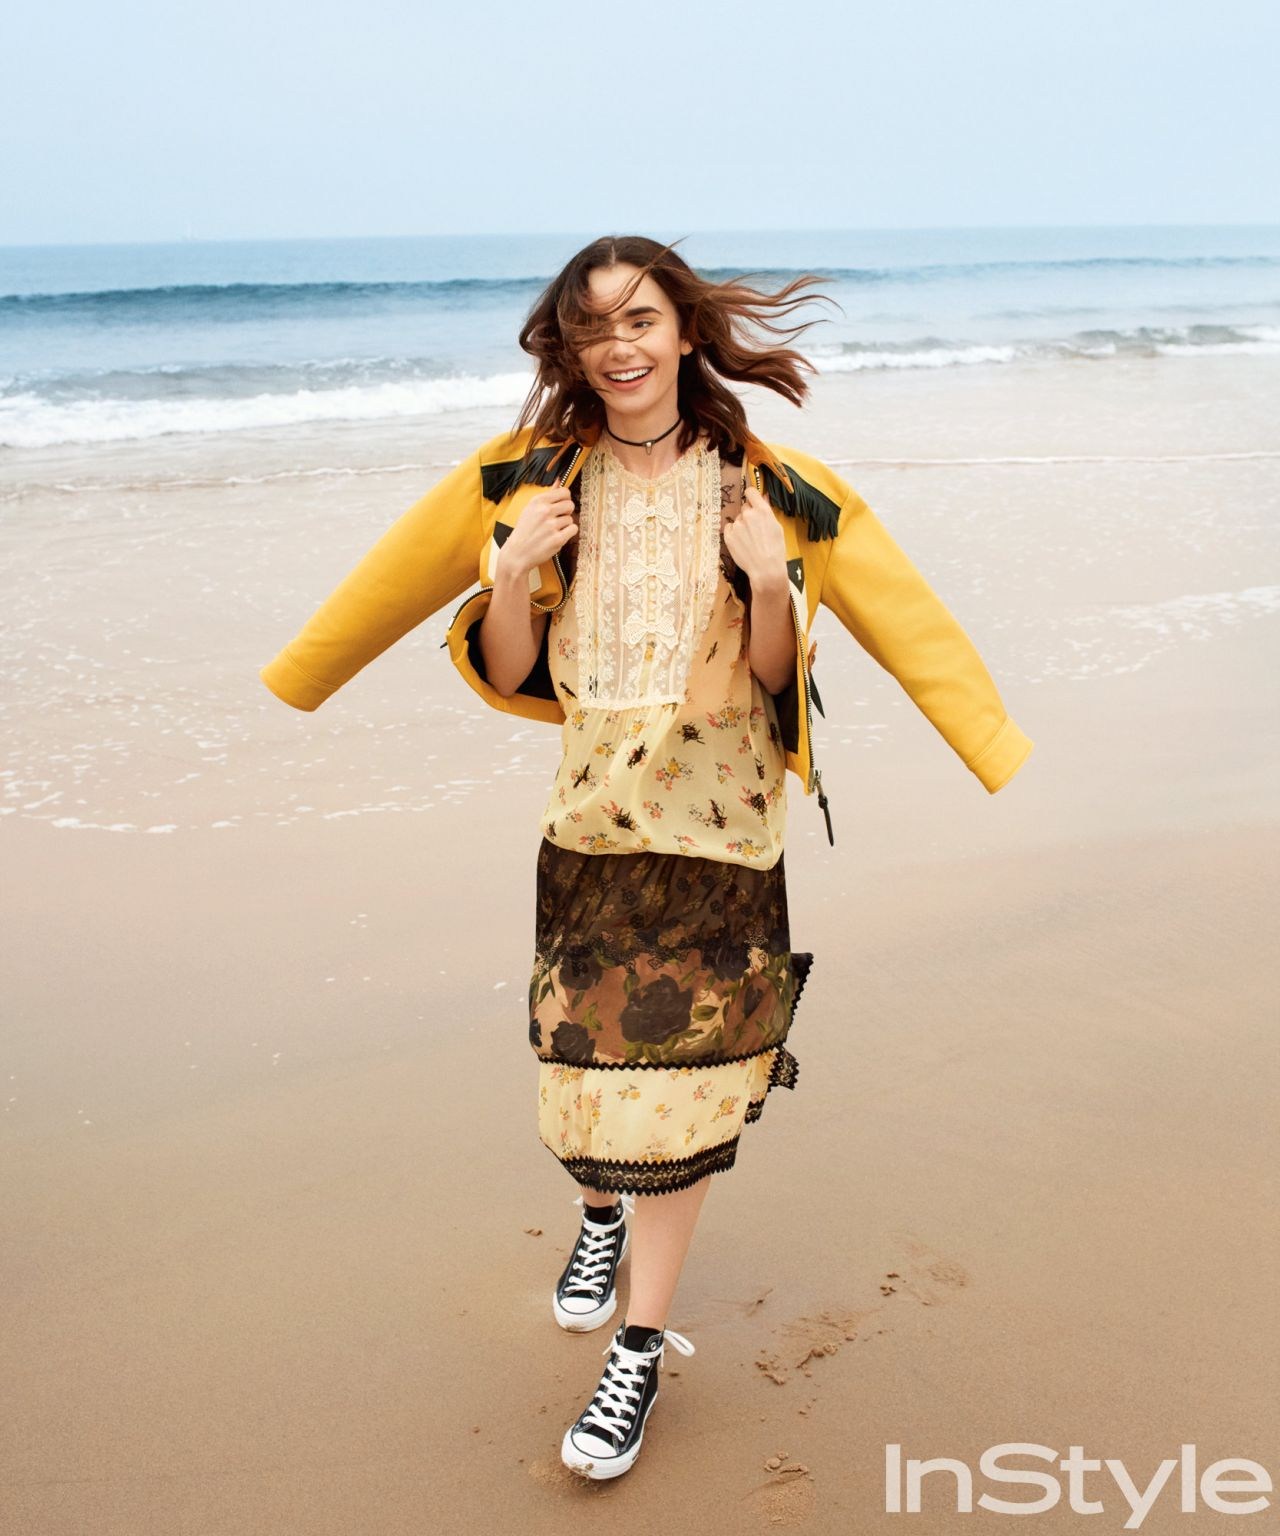 Lily Collins Photoshoot For Instyle Magazine Us 2017